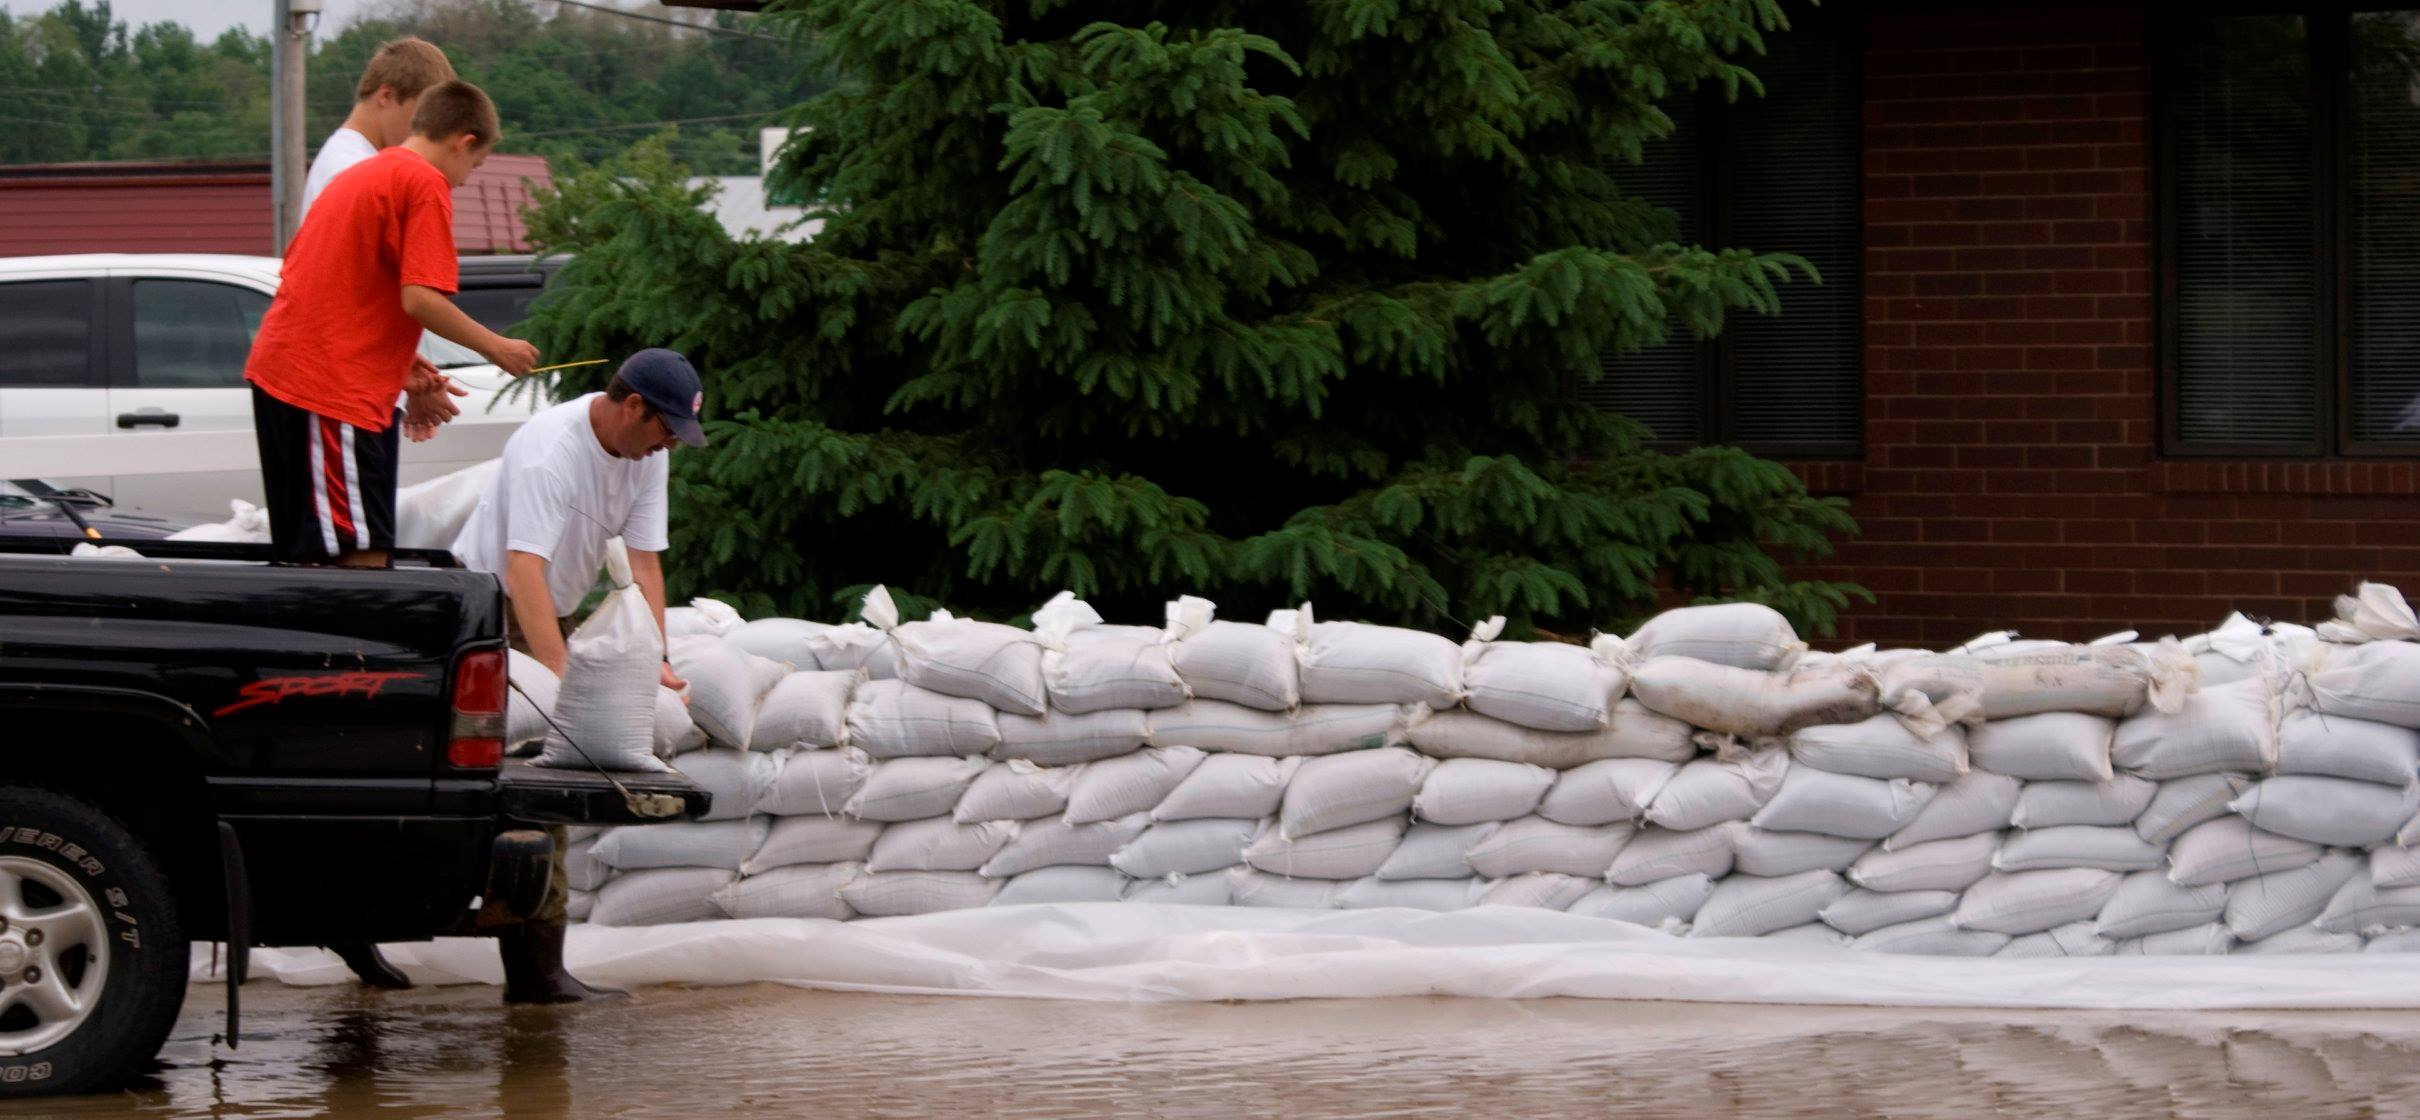 Volunteers Needed for Sandbagging Today, 11am-Sundown